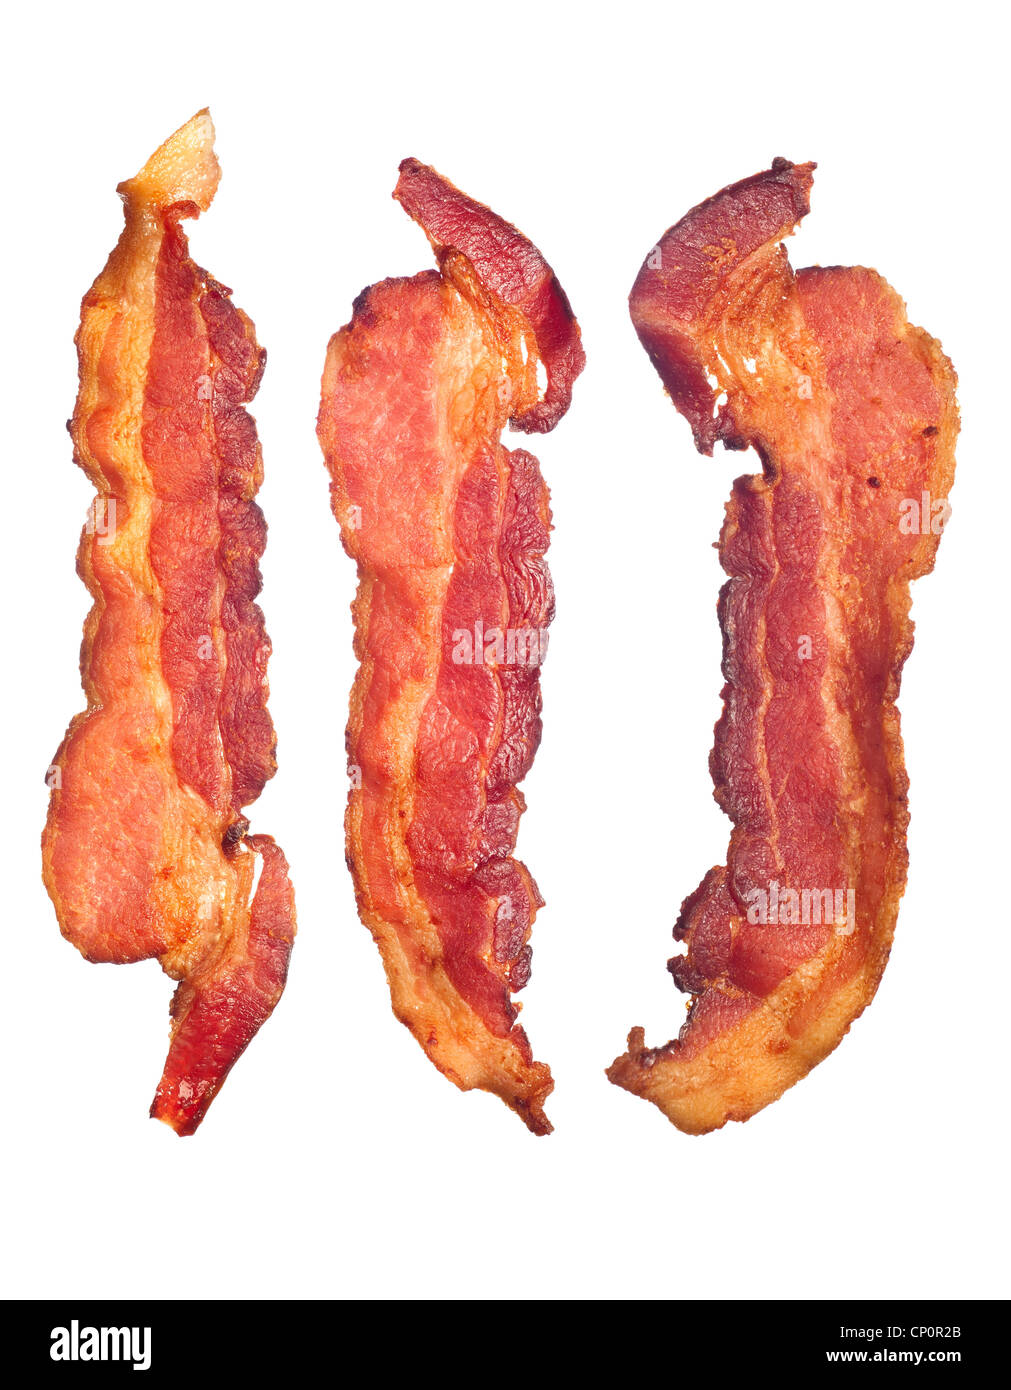 Three cooked, crispy fried bacon isolated on a white background. Good for many health and cooking inferences. - Stock Image